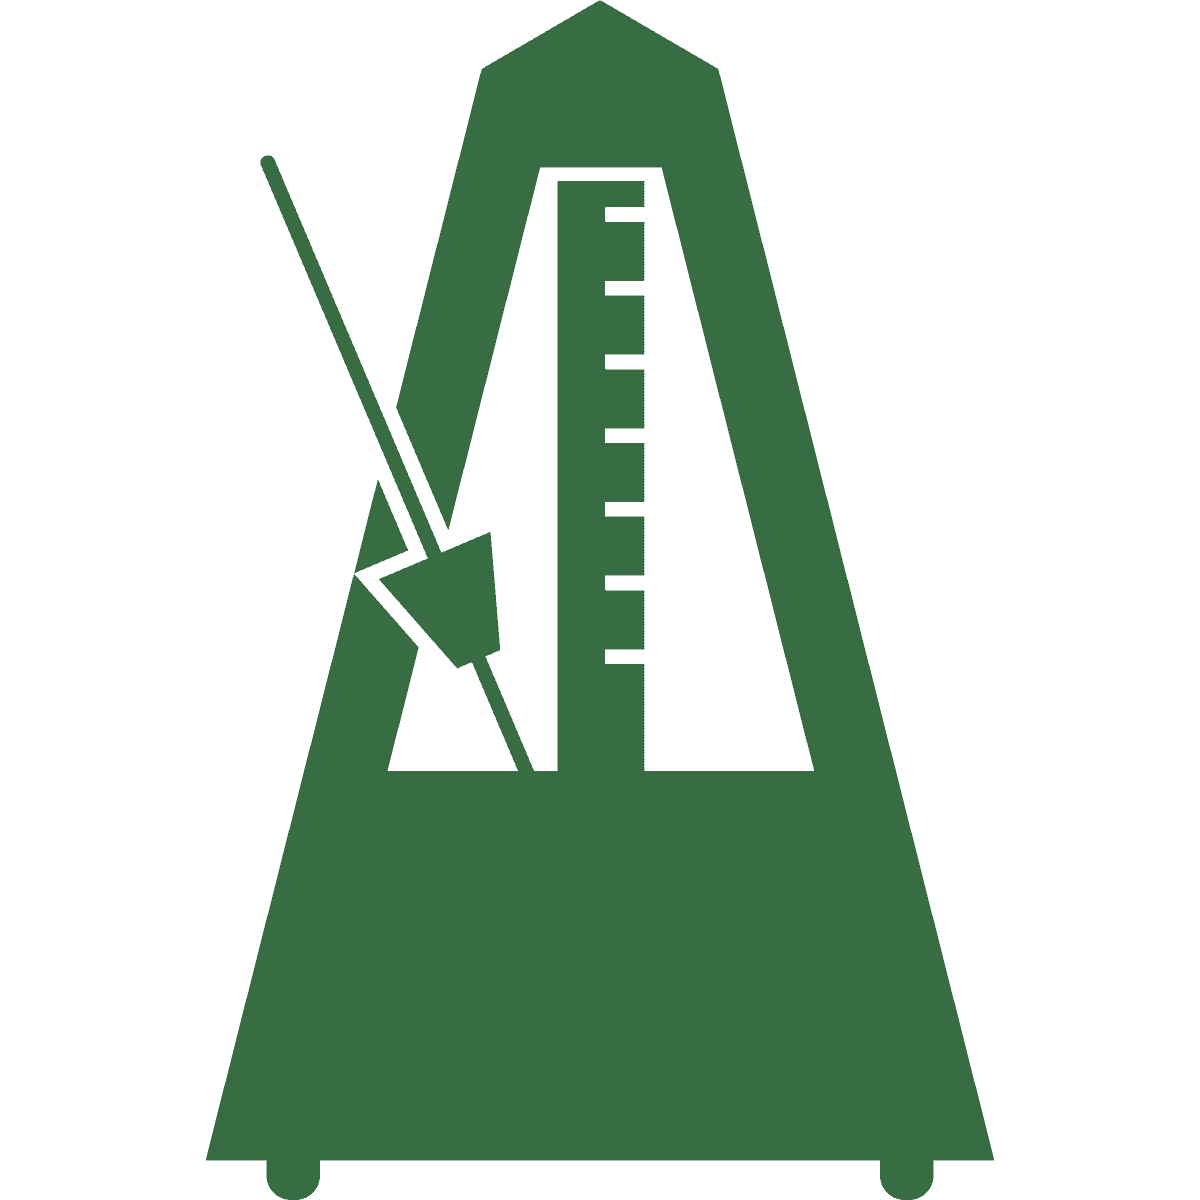 Green scale icon